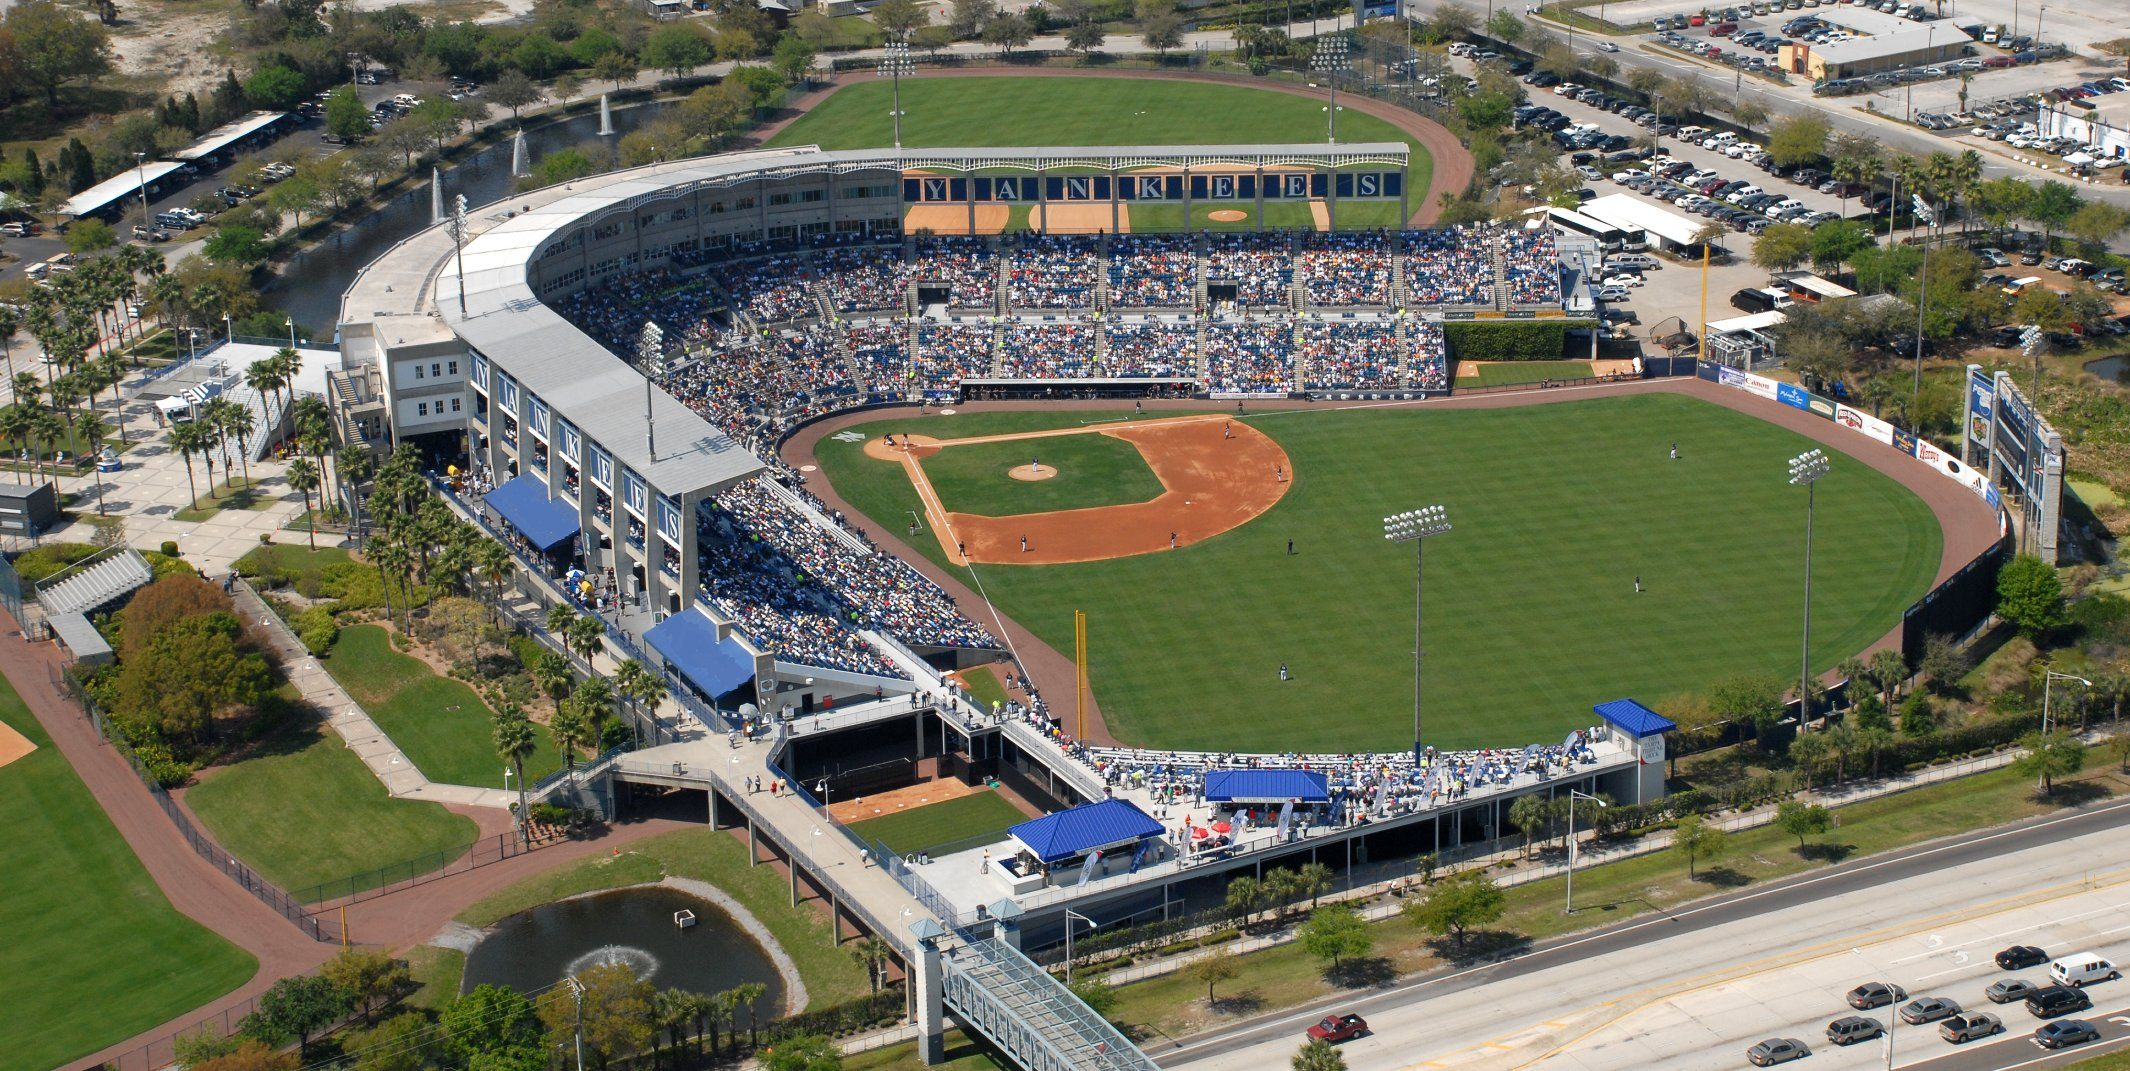 Steinbrenner Field is home to the Yankees during